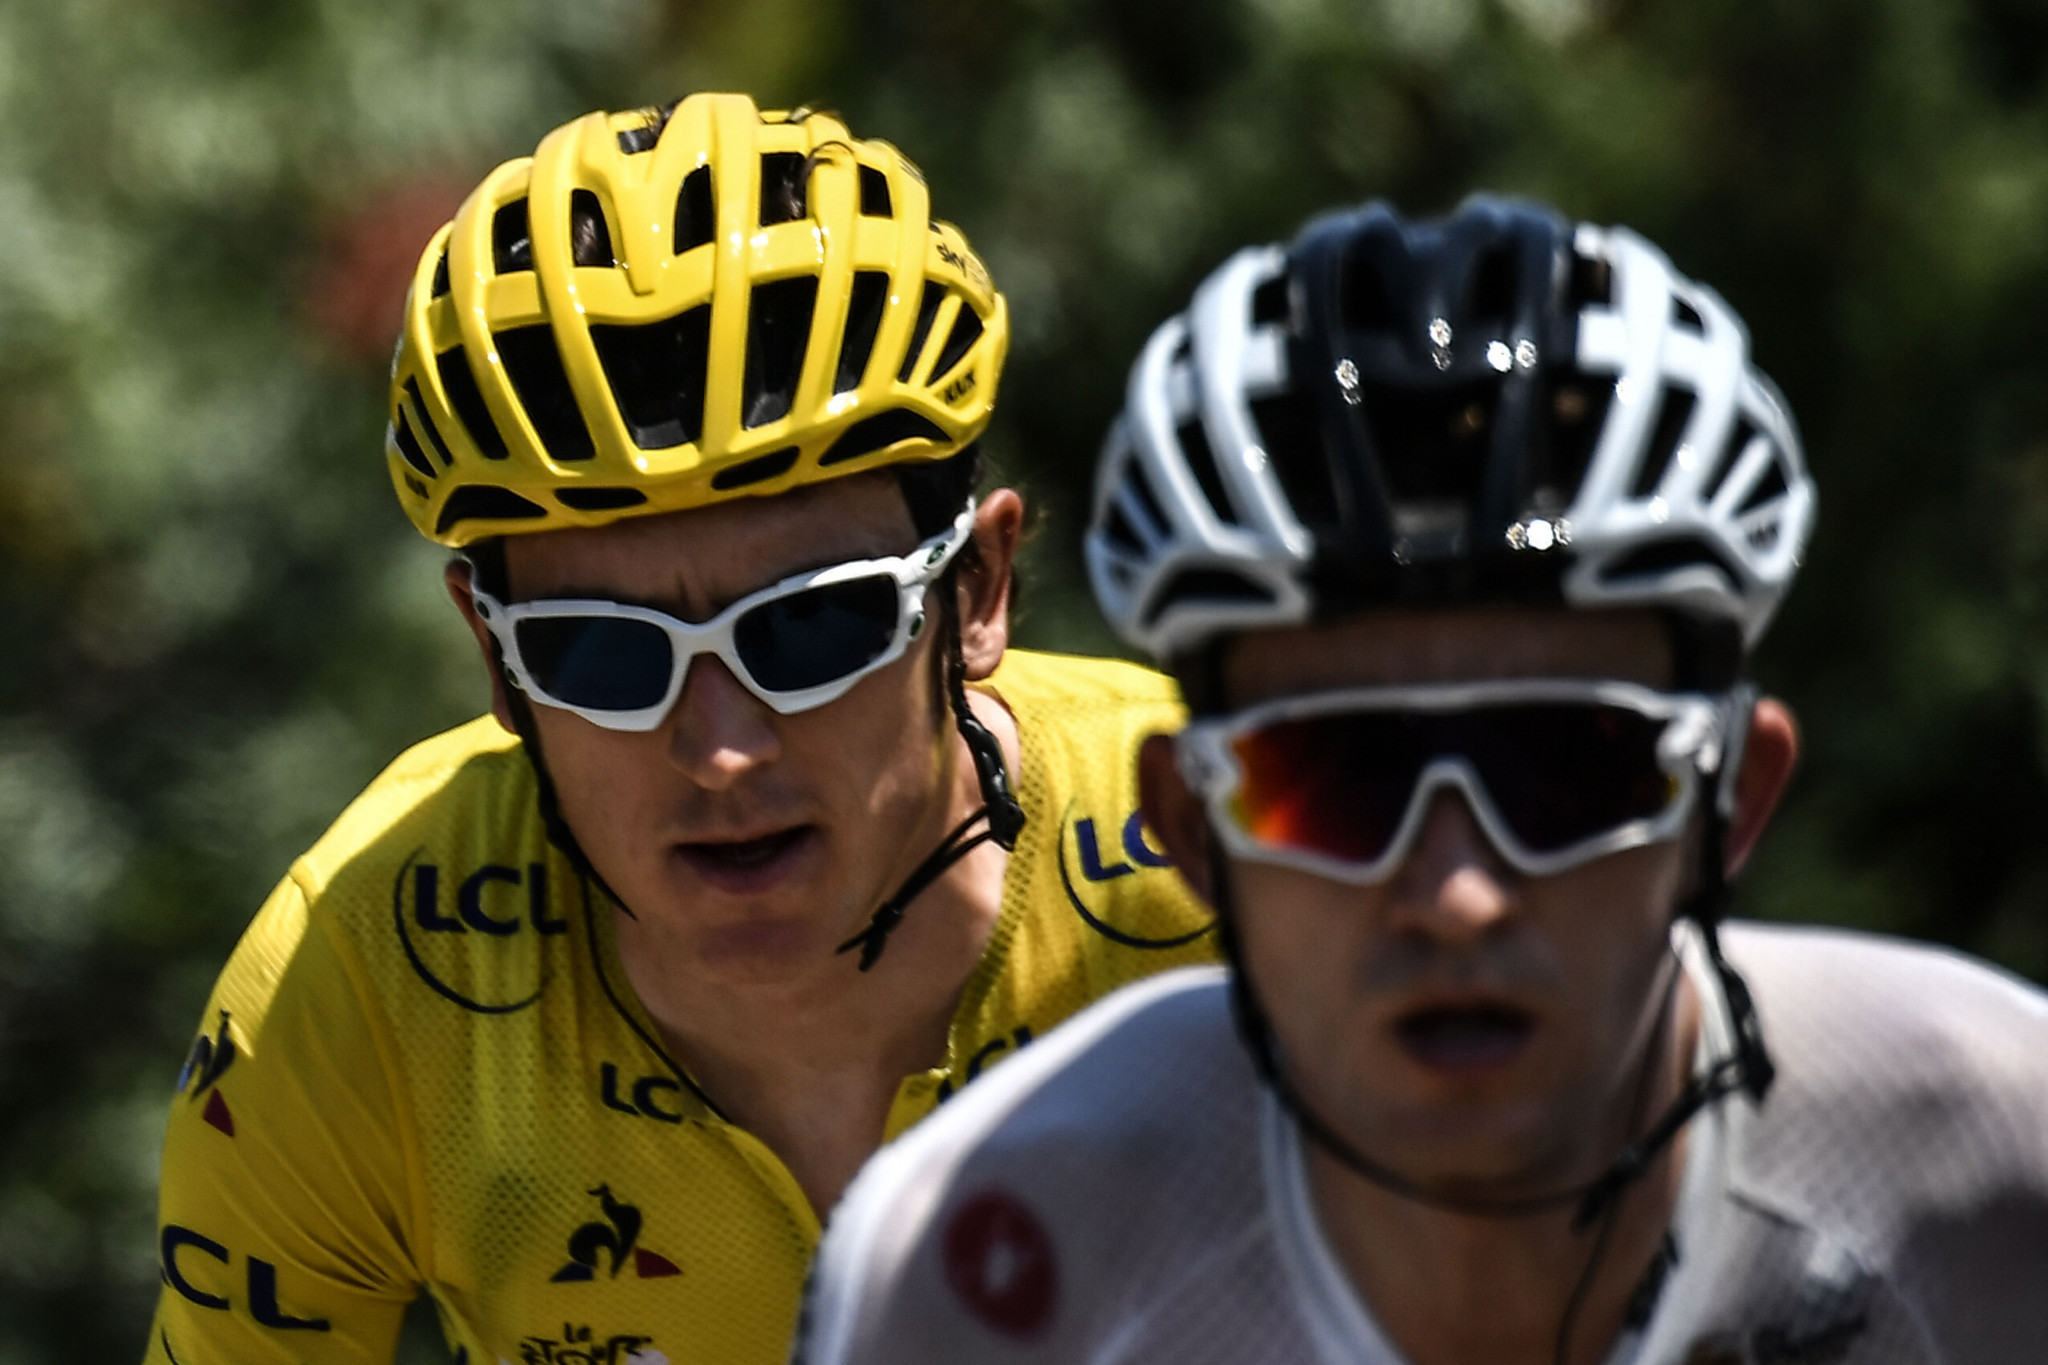 Michał Kwiatkowski, right, pictured supporting Geraint Thomas at the Tour de France will be one of the favourites at the Tour de Pologne ©Getty Images